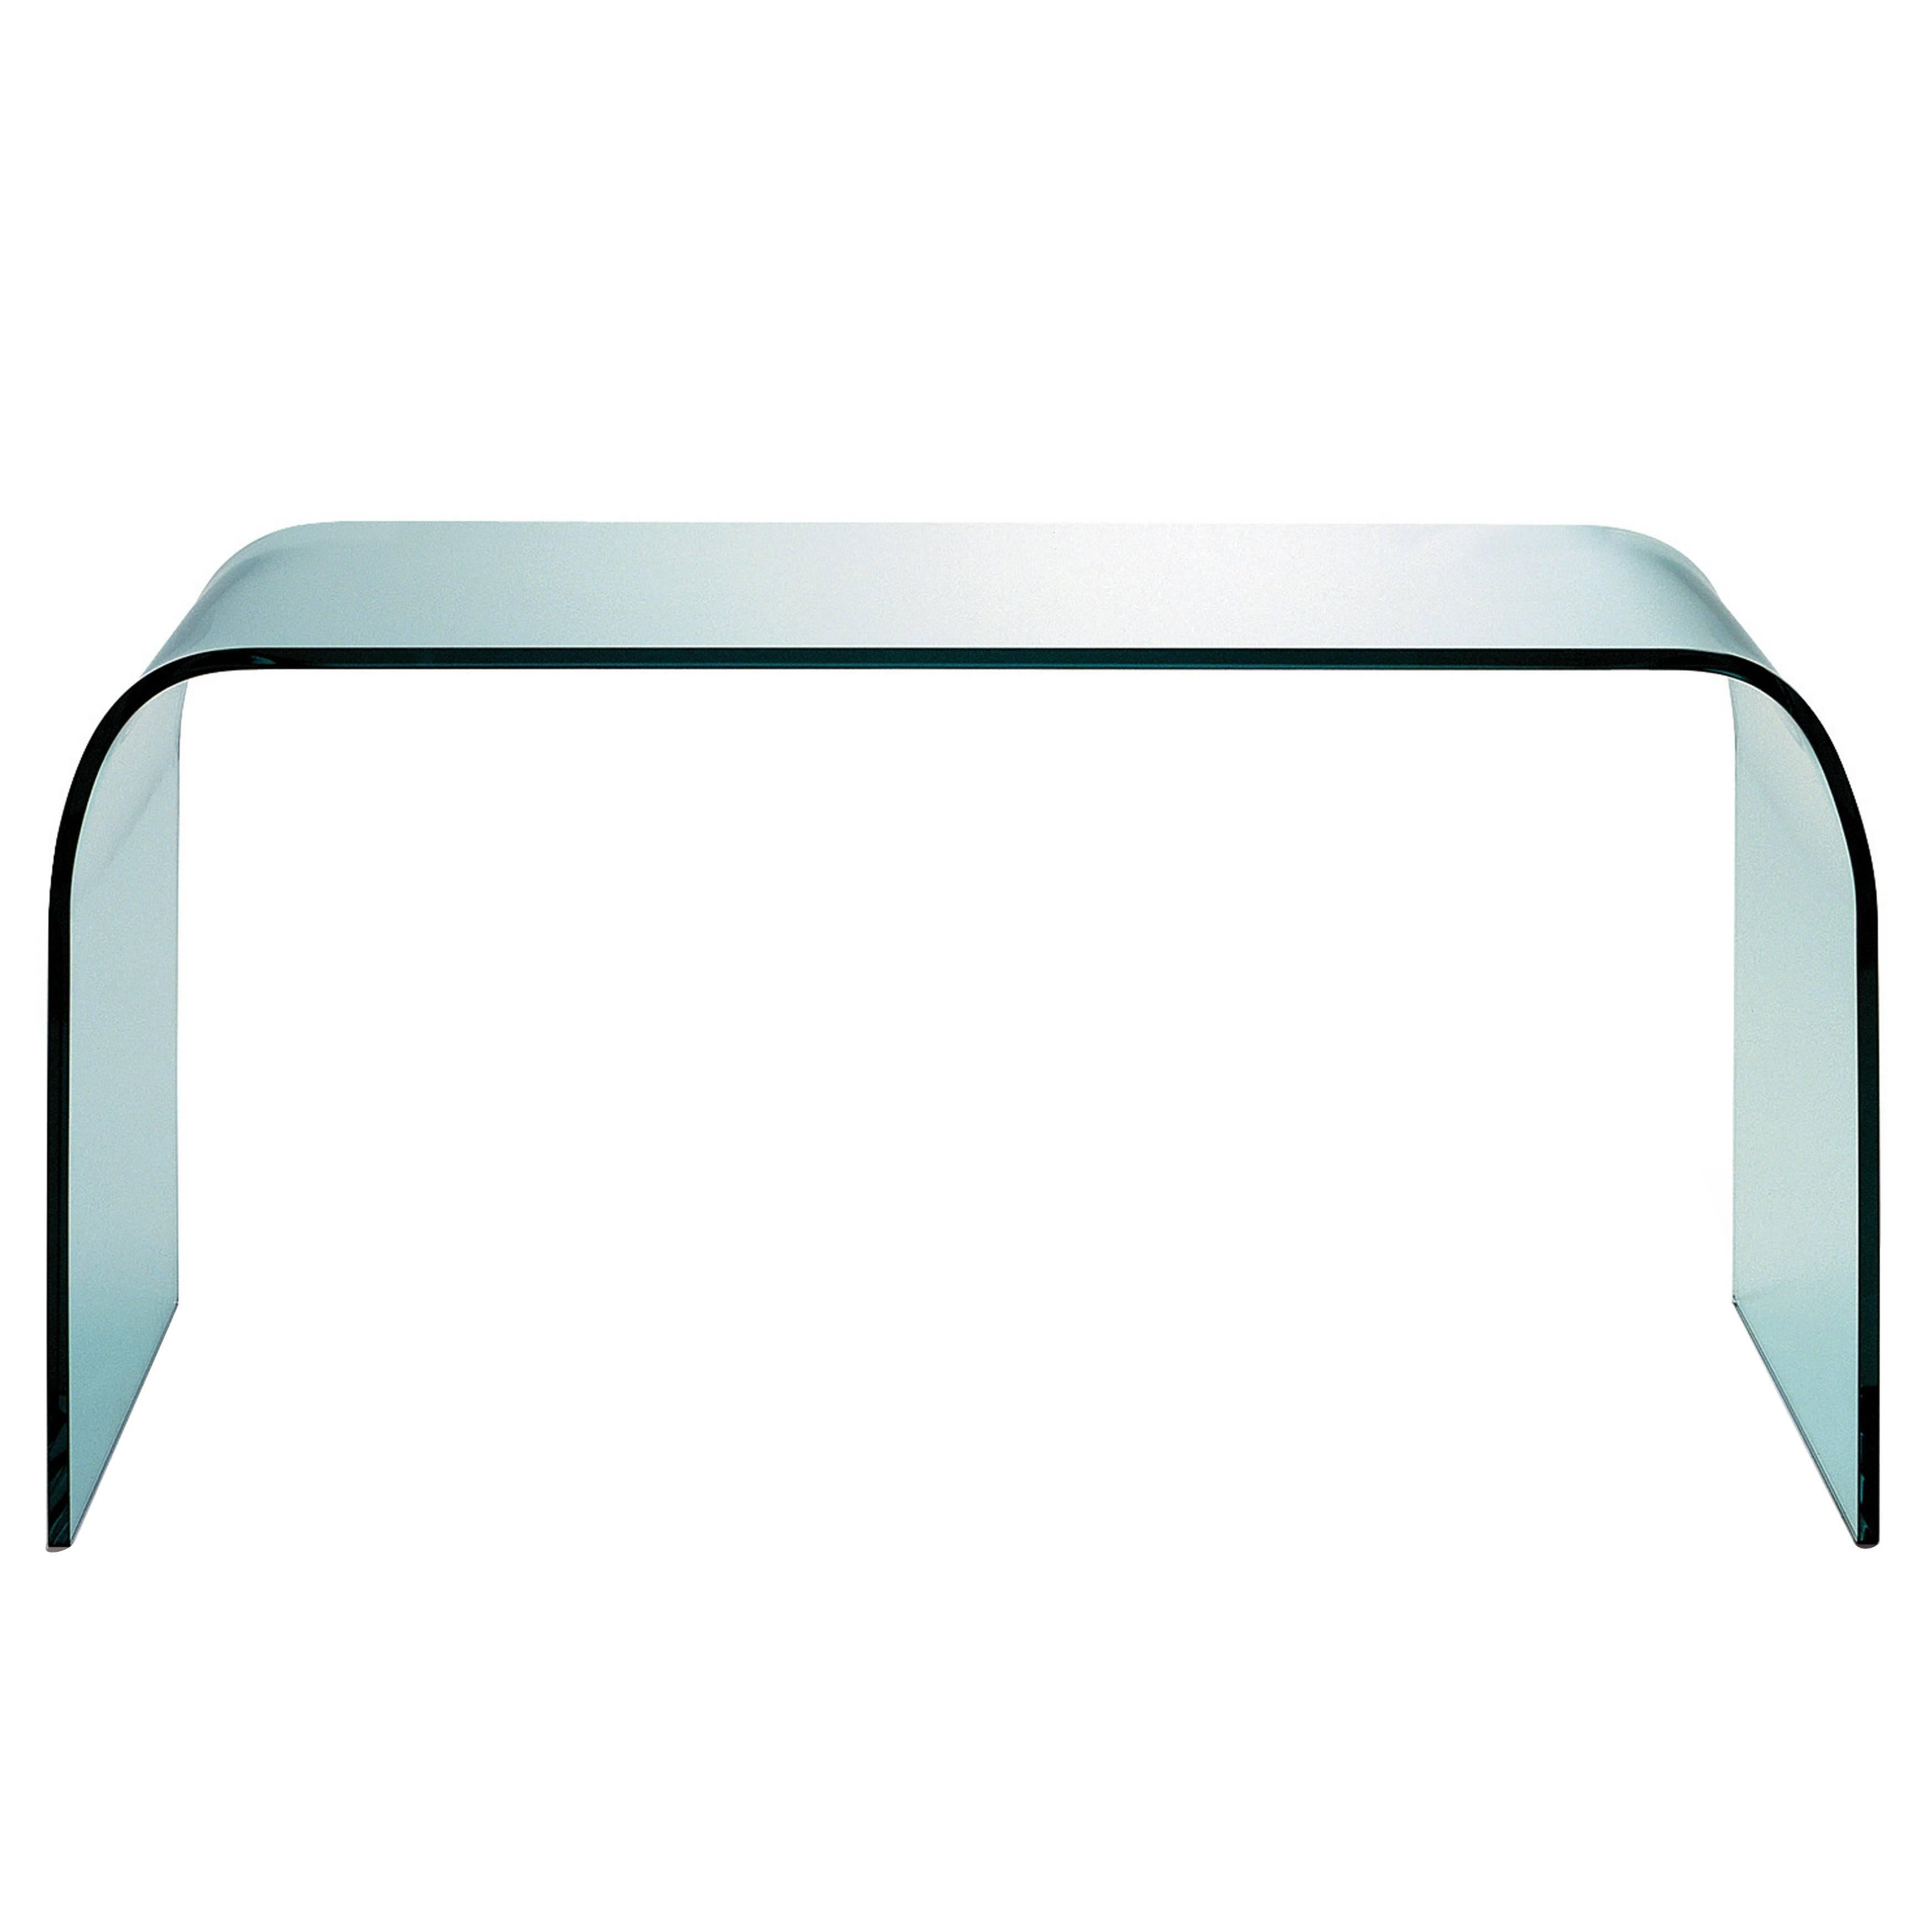 Fontana Glass Table Designed by Pietro Chiesa in 1932 for Fontana Arte